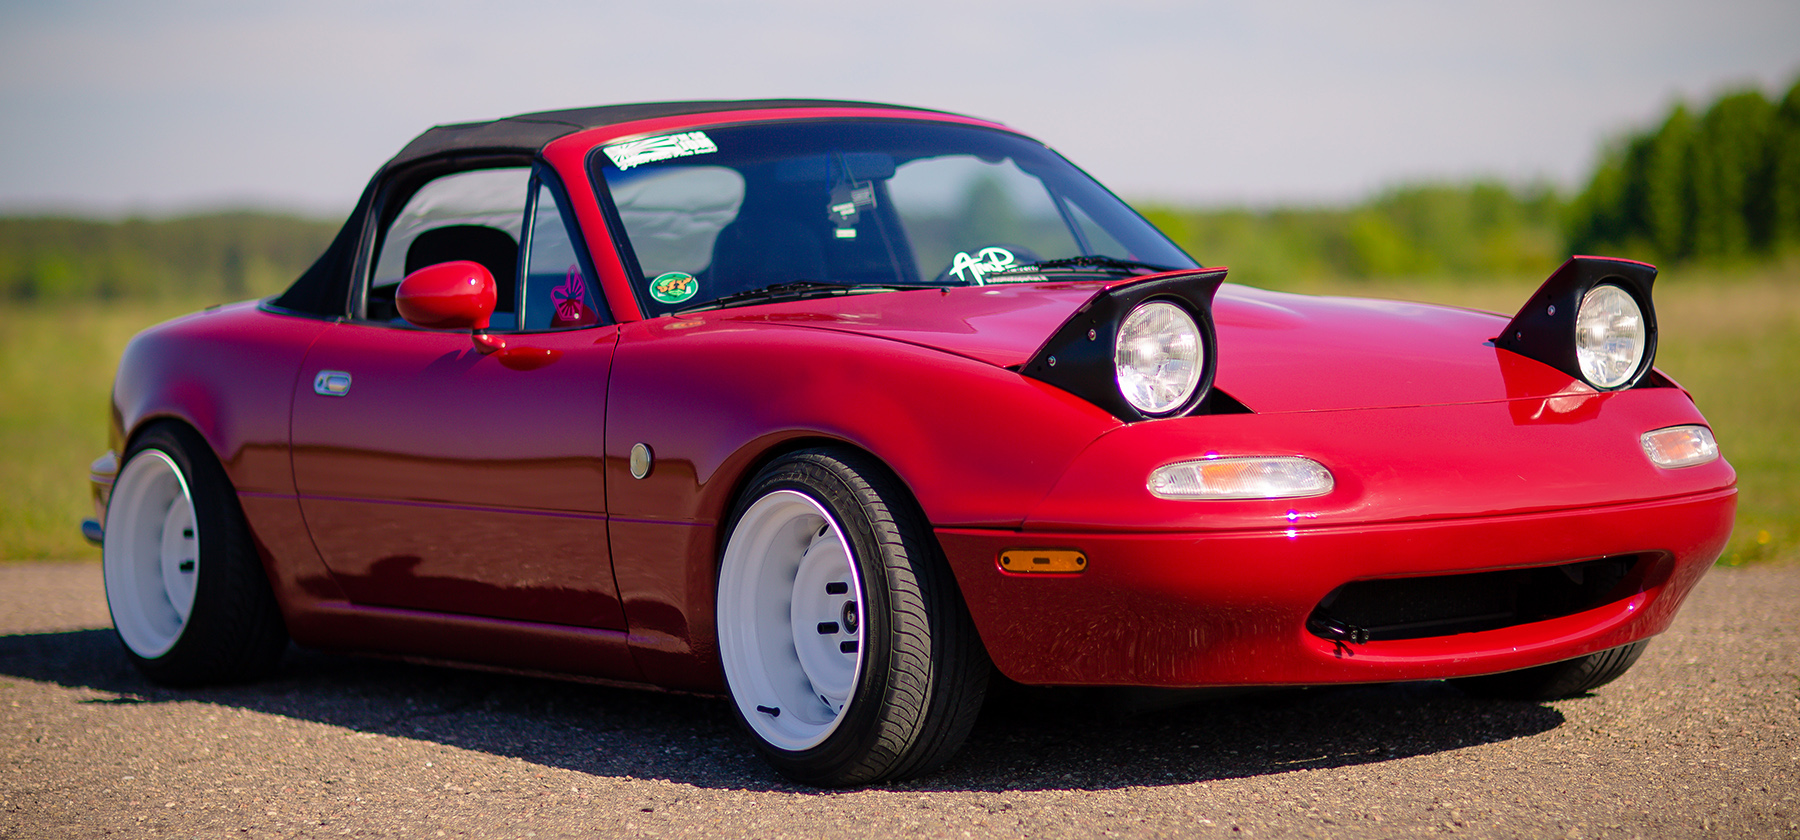 Miata Na Bundle Commune Diy Recycled Skateboards